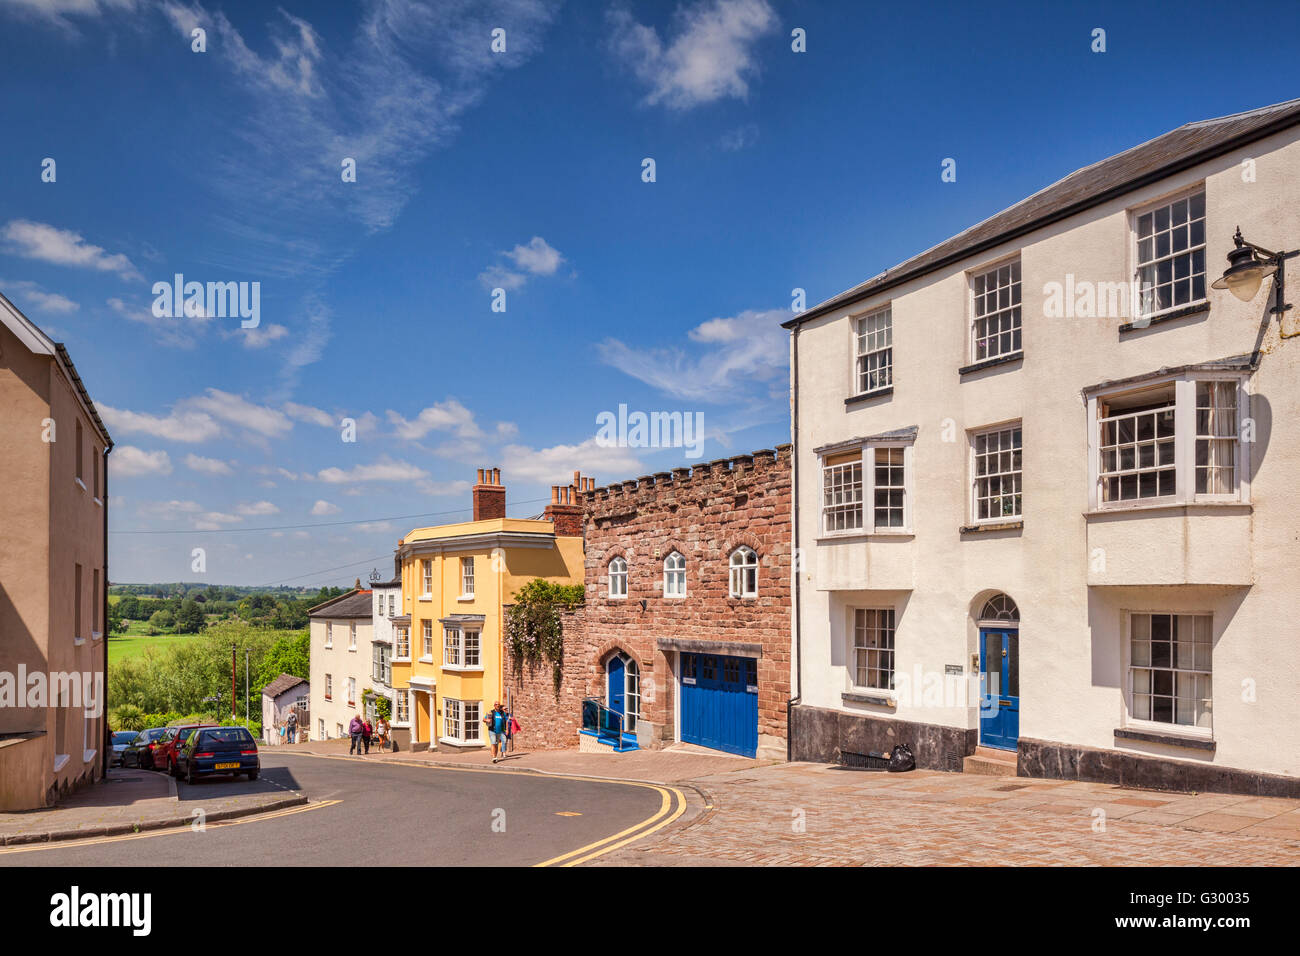 Attractive buildings in Wye Street, Ross on Wye, Herefordshire, England, UK - Stock Image